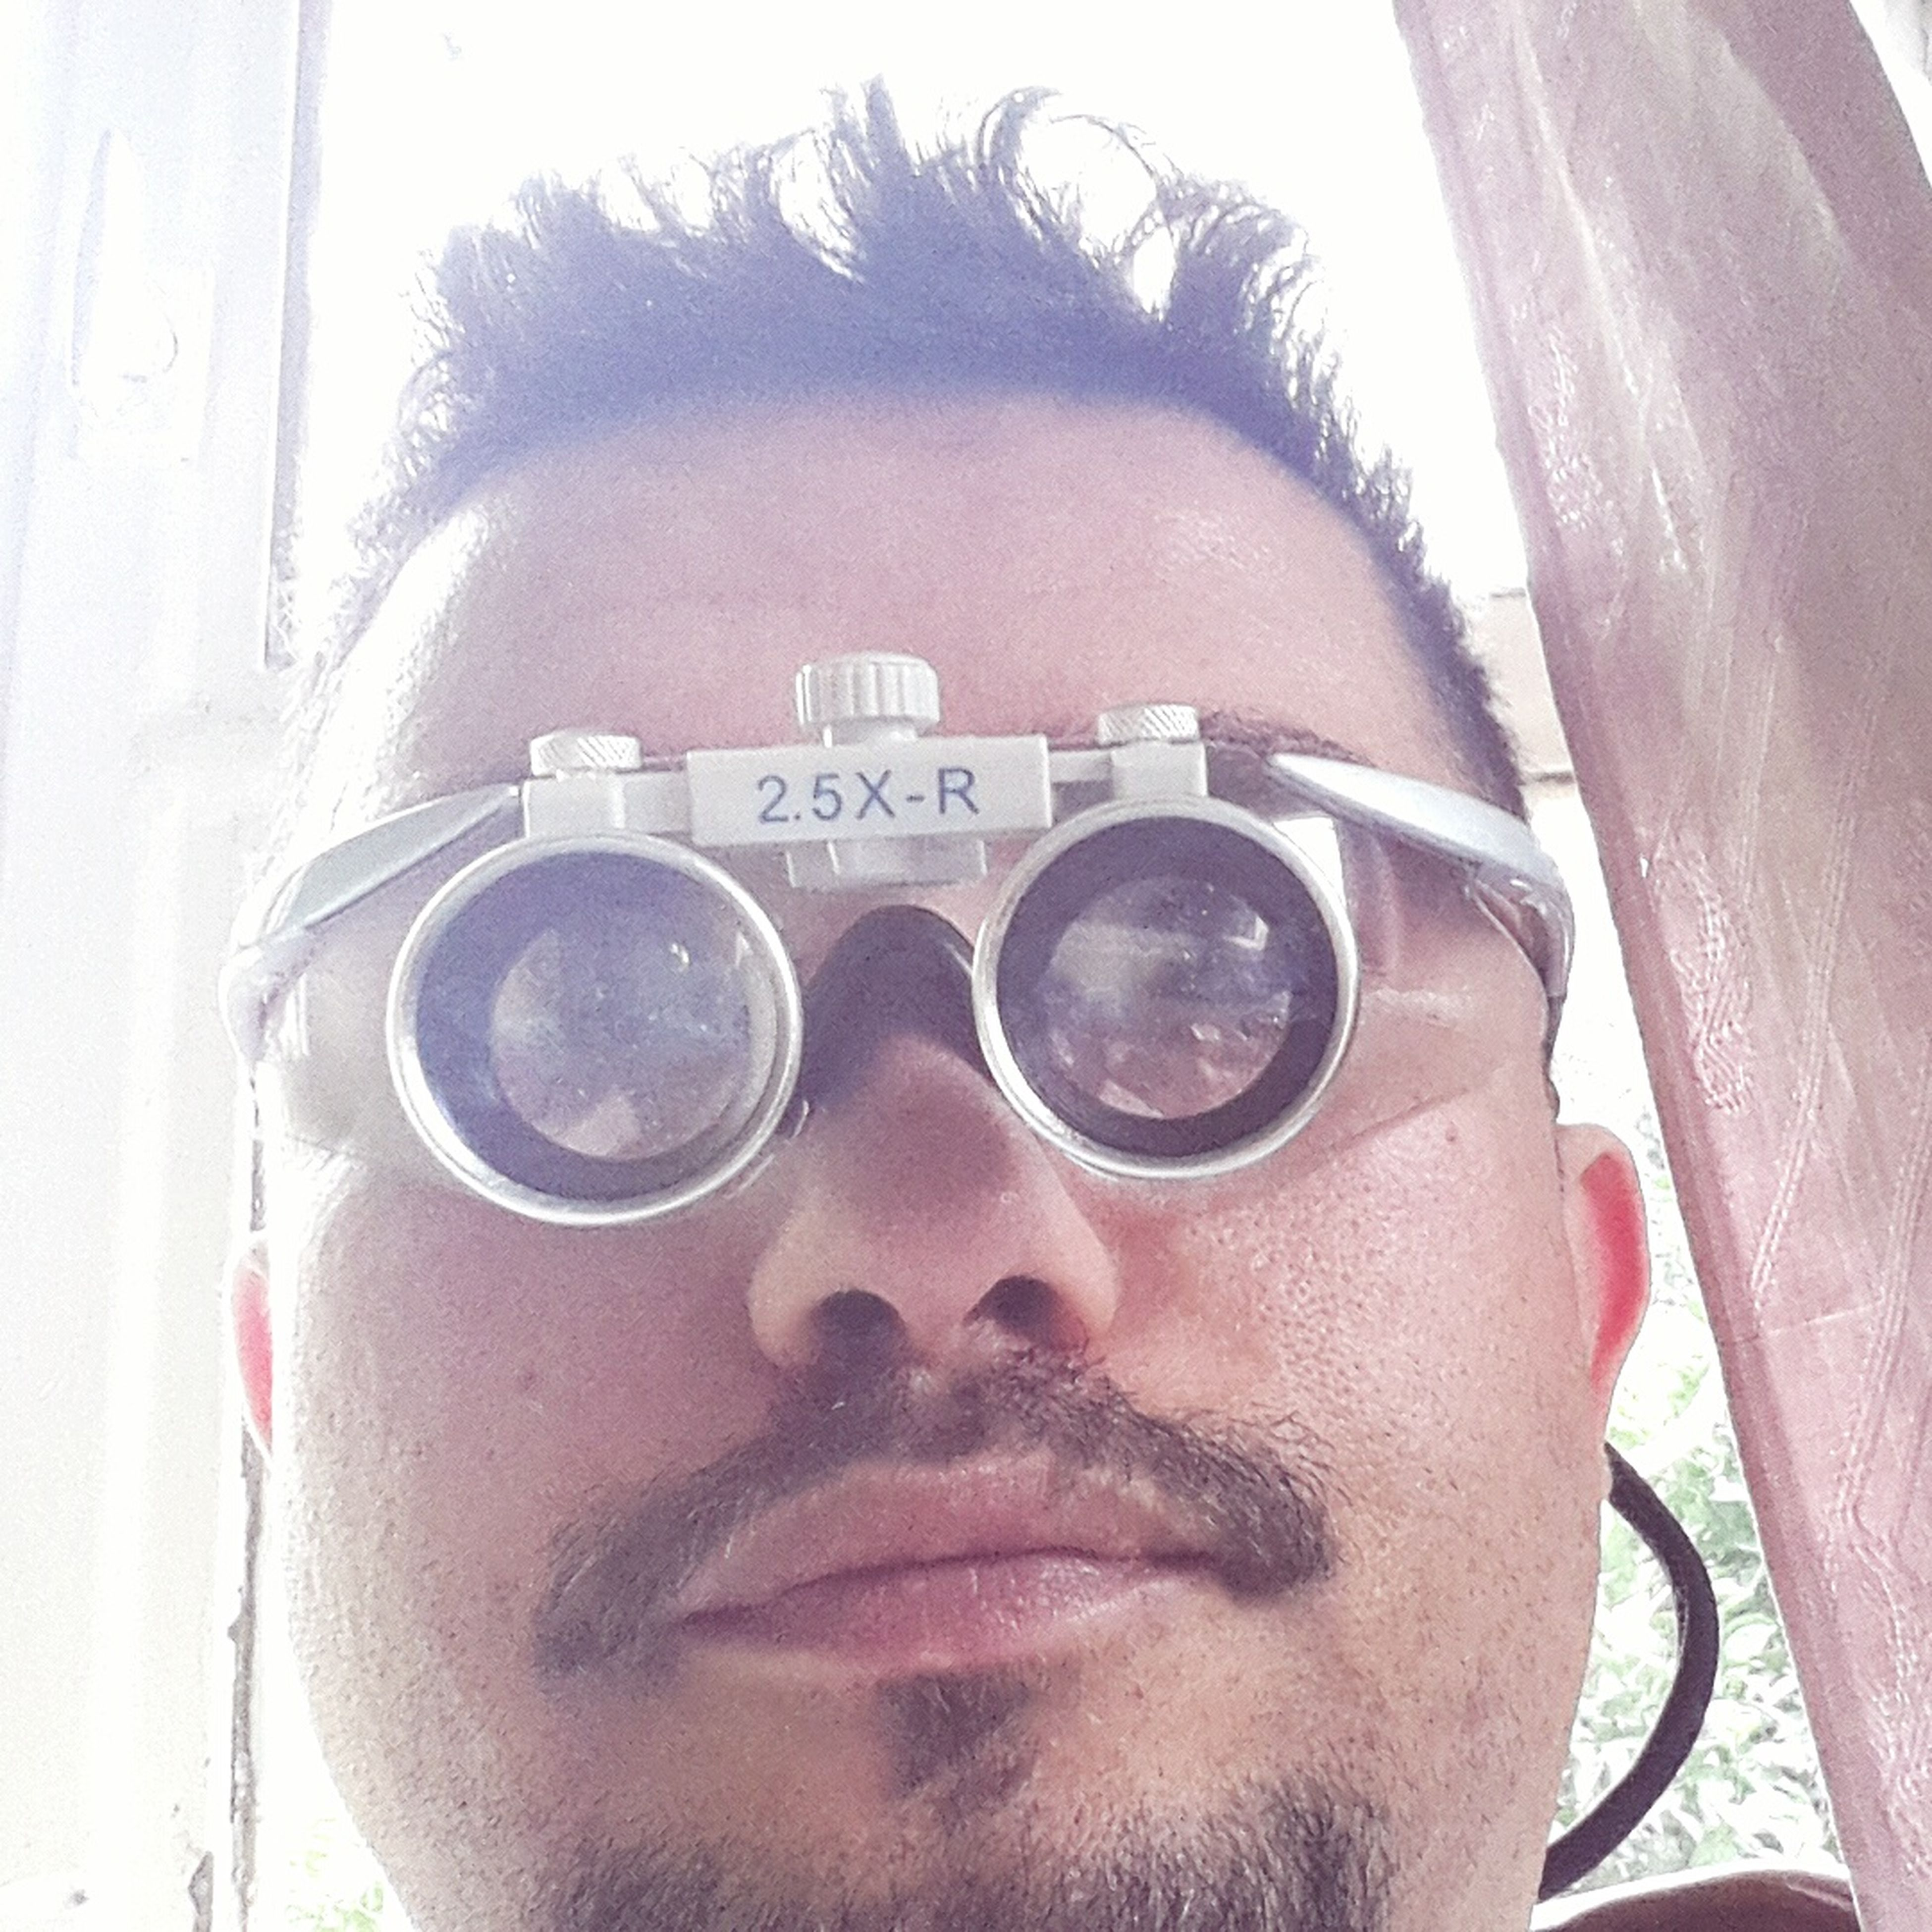 communication, text, headshot, lifestyles, close-up, western script, leisure activity, sunglasses, person, young adult, front view, photography themes, holding, young men, looking at camera, indoors, reflection